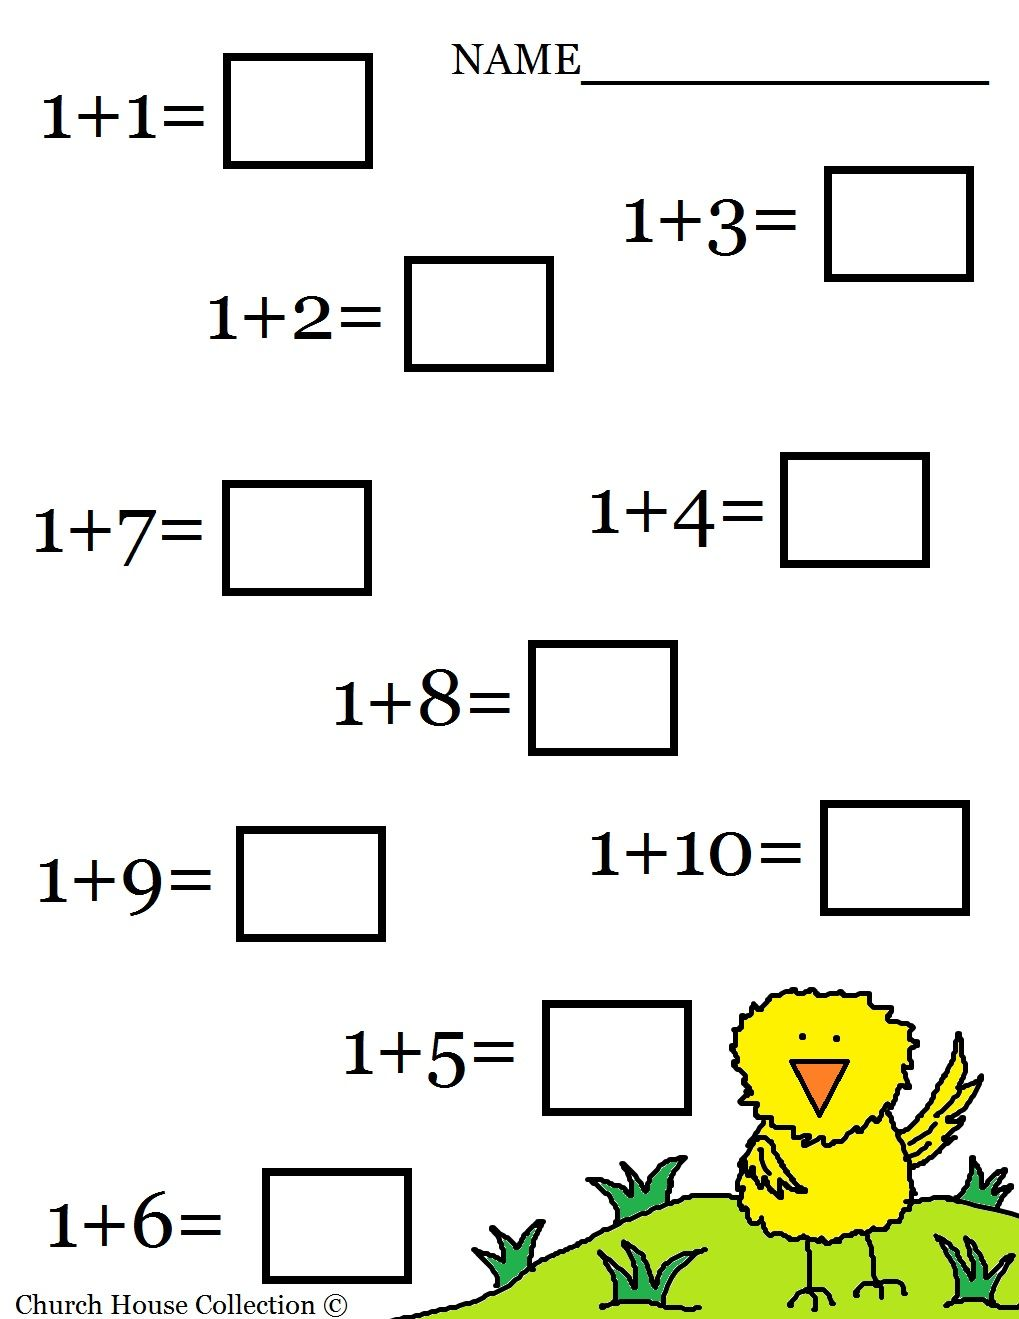 Aldiablosus  Seductive  Images About Worksheets  Math On Pinterest  Math Sheets  With Marvelous  Images About Worksheets  Math On Pinterest  Math Sheets Math Worksheets For Kindergarten And Simple Addition With Beautiful Multiplication Worksheets Grade  Printable Also Free Percentage Worksheets In Addition Basic Exponent Worksheets And The Scientific Method Worksheets As Well As Multiples Worksheets Grade  Additionally School Printable Worksheets From Pinterestcom With Aldiablosus  Marvelous  Images About Worksheets  Math On Pinterest  Math Sheets  With Beautiful  Images About Worksheets  Math On Pinterest  Math Sheets Math Worksheets For Kindergarten And Simple Addition And Seductive Multiplication Worksheets Grade  Printable Also Free Percentage Worksheets In Addition Basic Exponent Worksheets From Pinterestcom